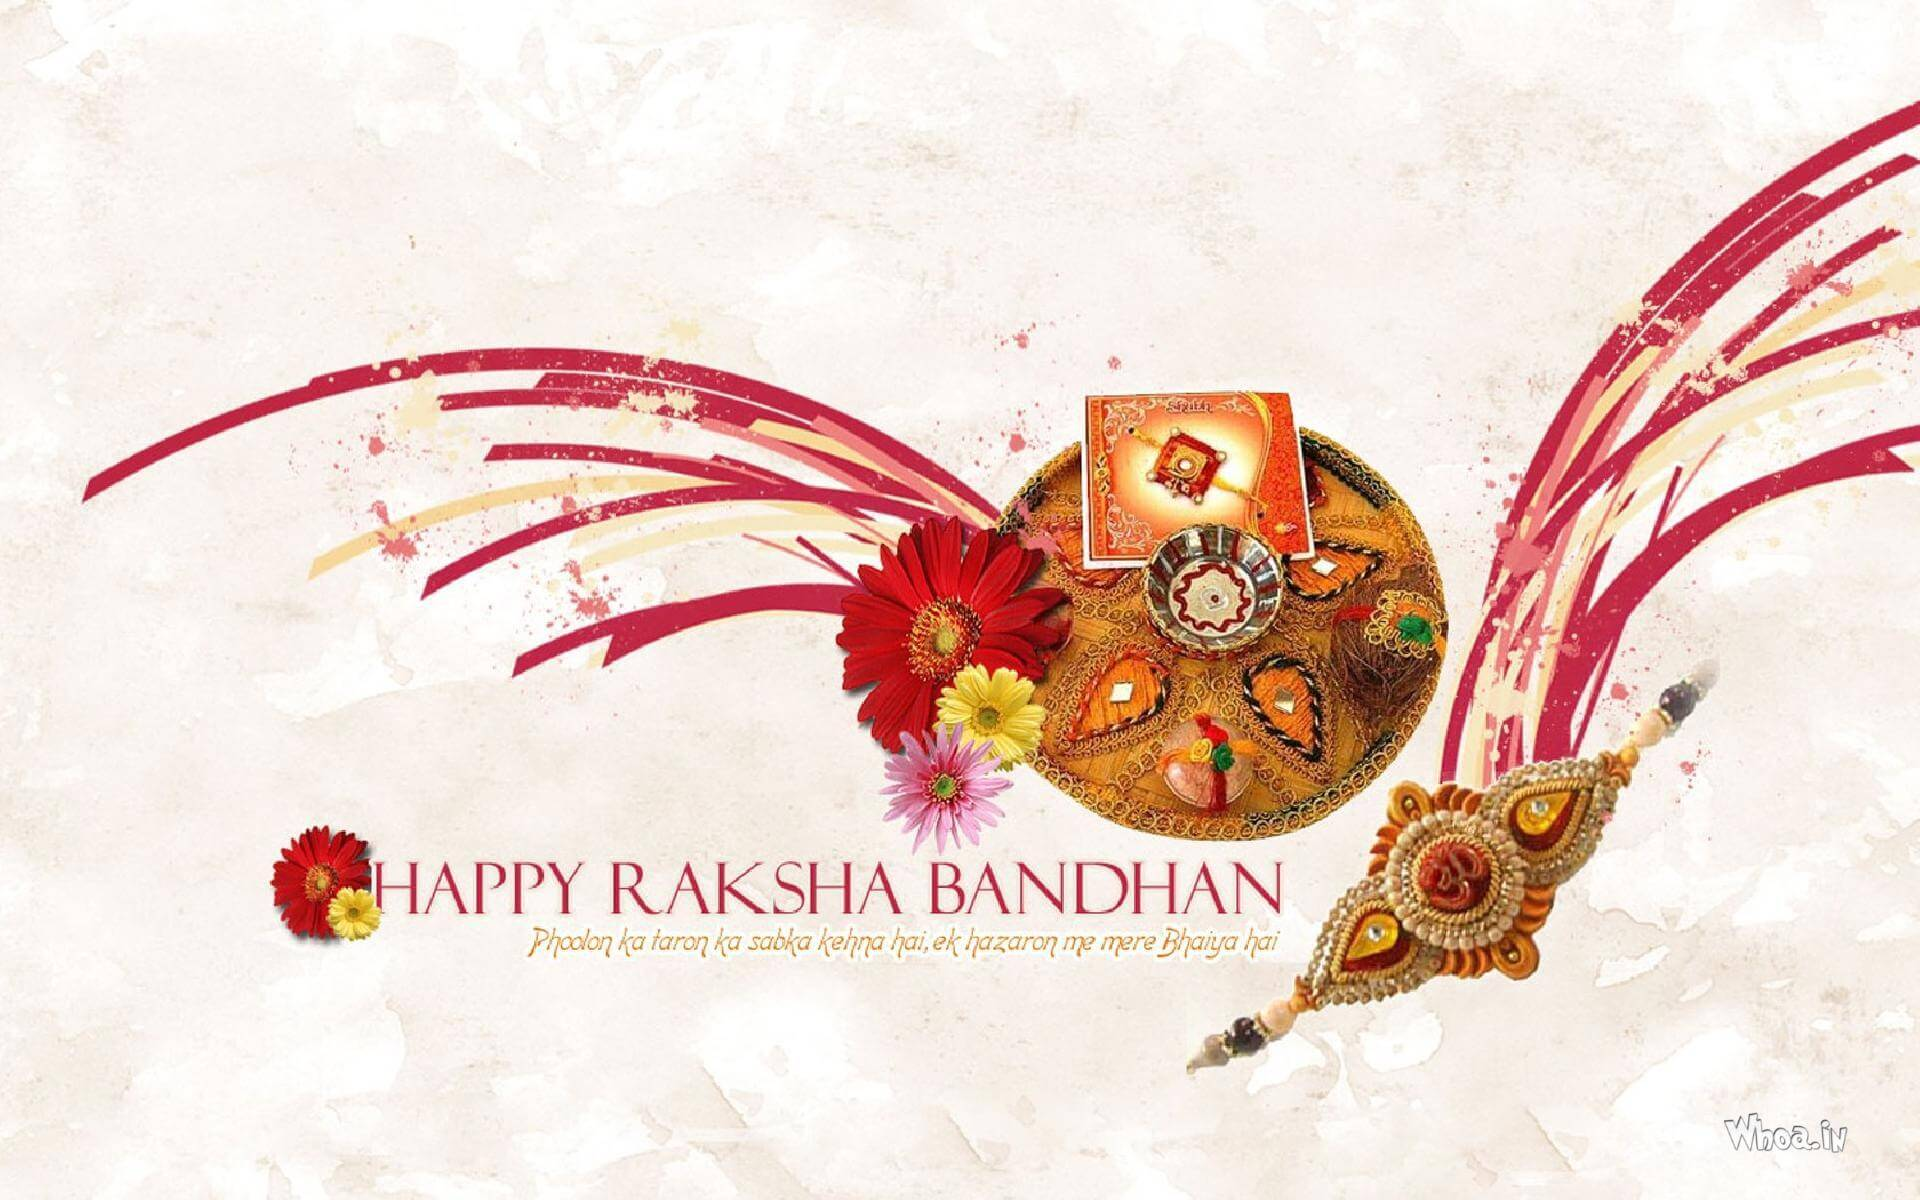 Happy Raksha Bandhan Wallpaper Hd